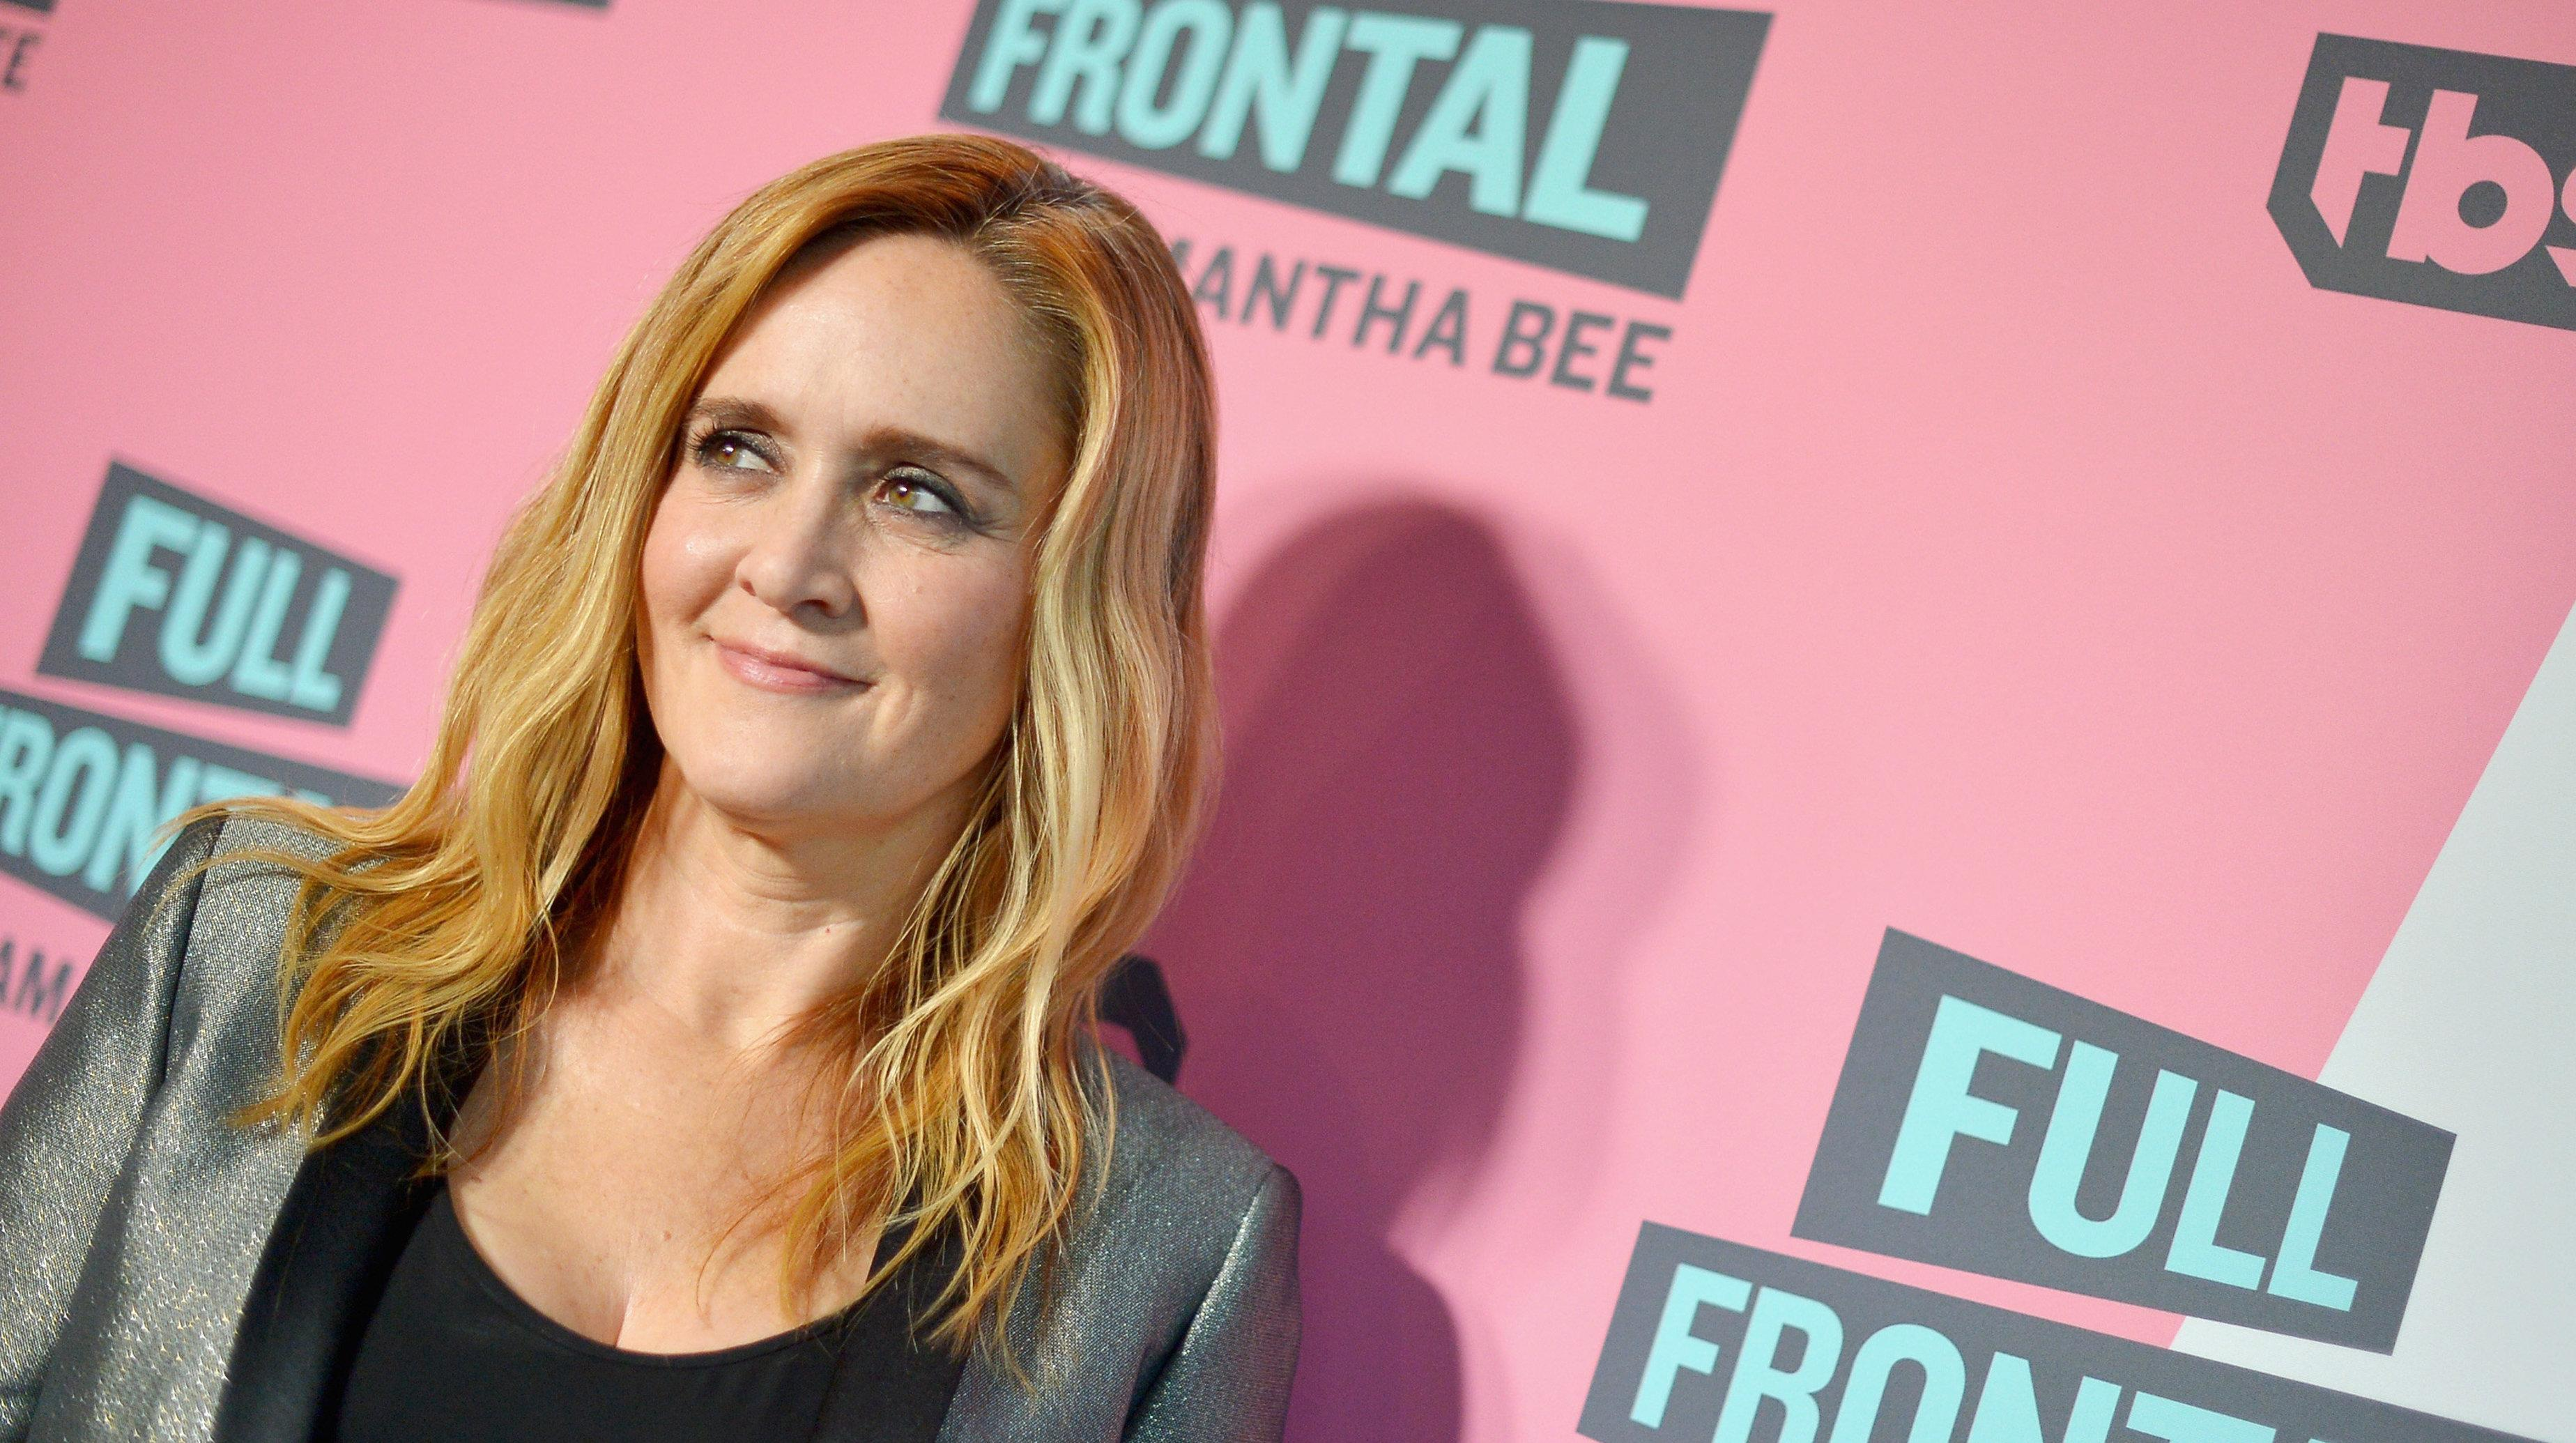 Samantha Bee Loses Advertisers After Comments About Ivanka Trump